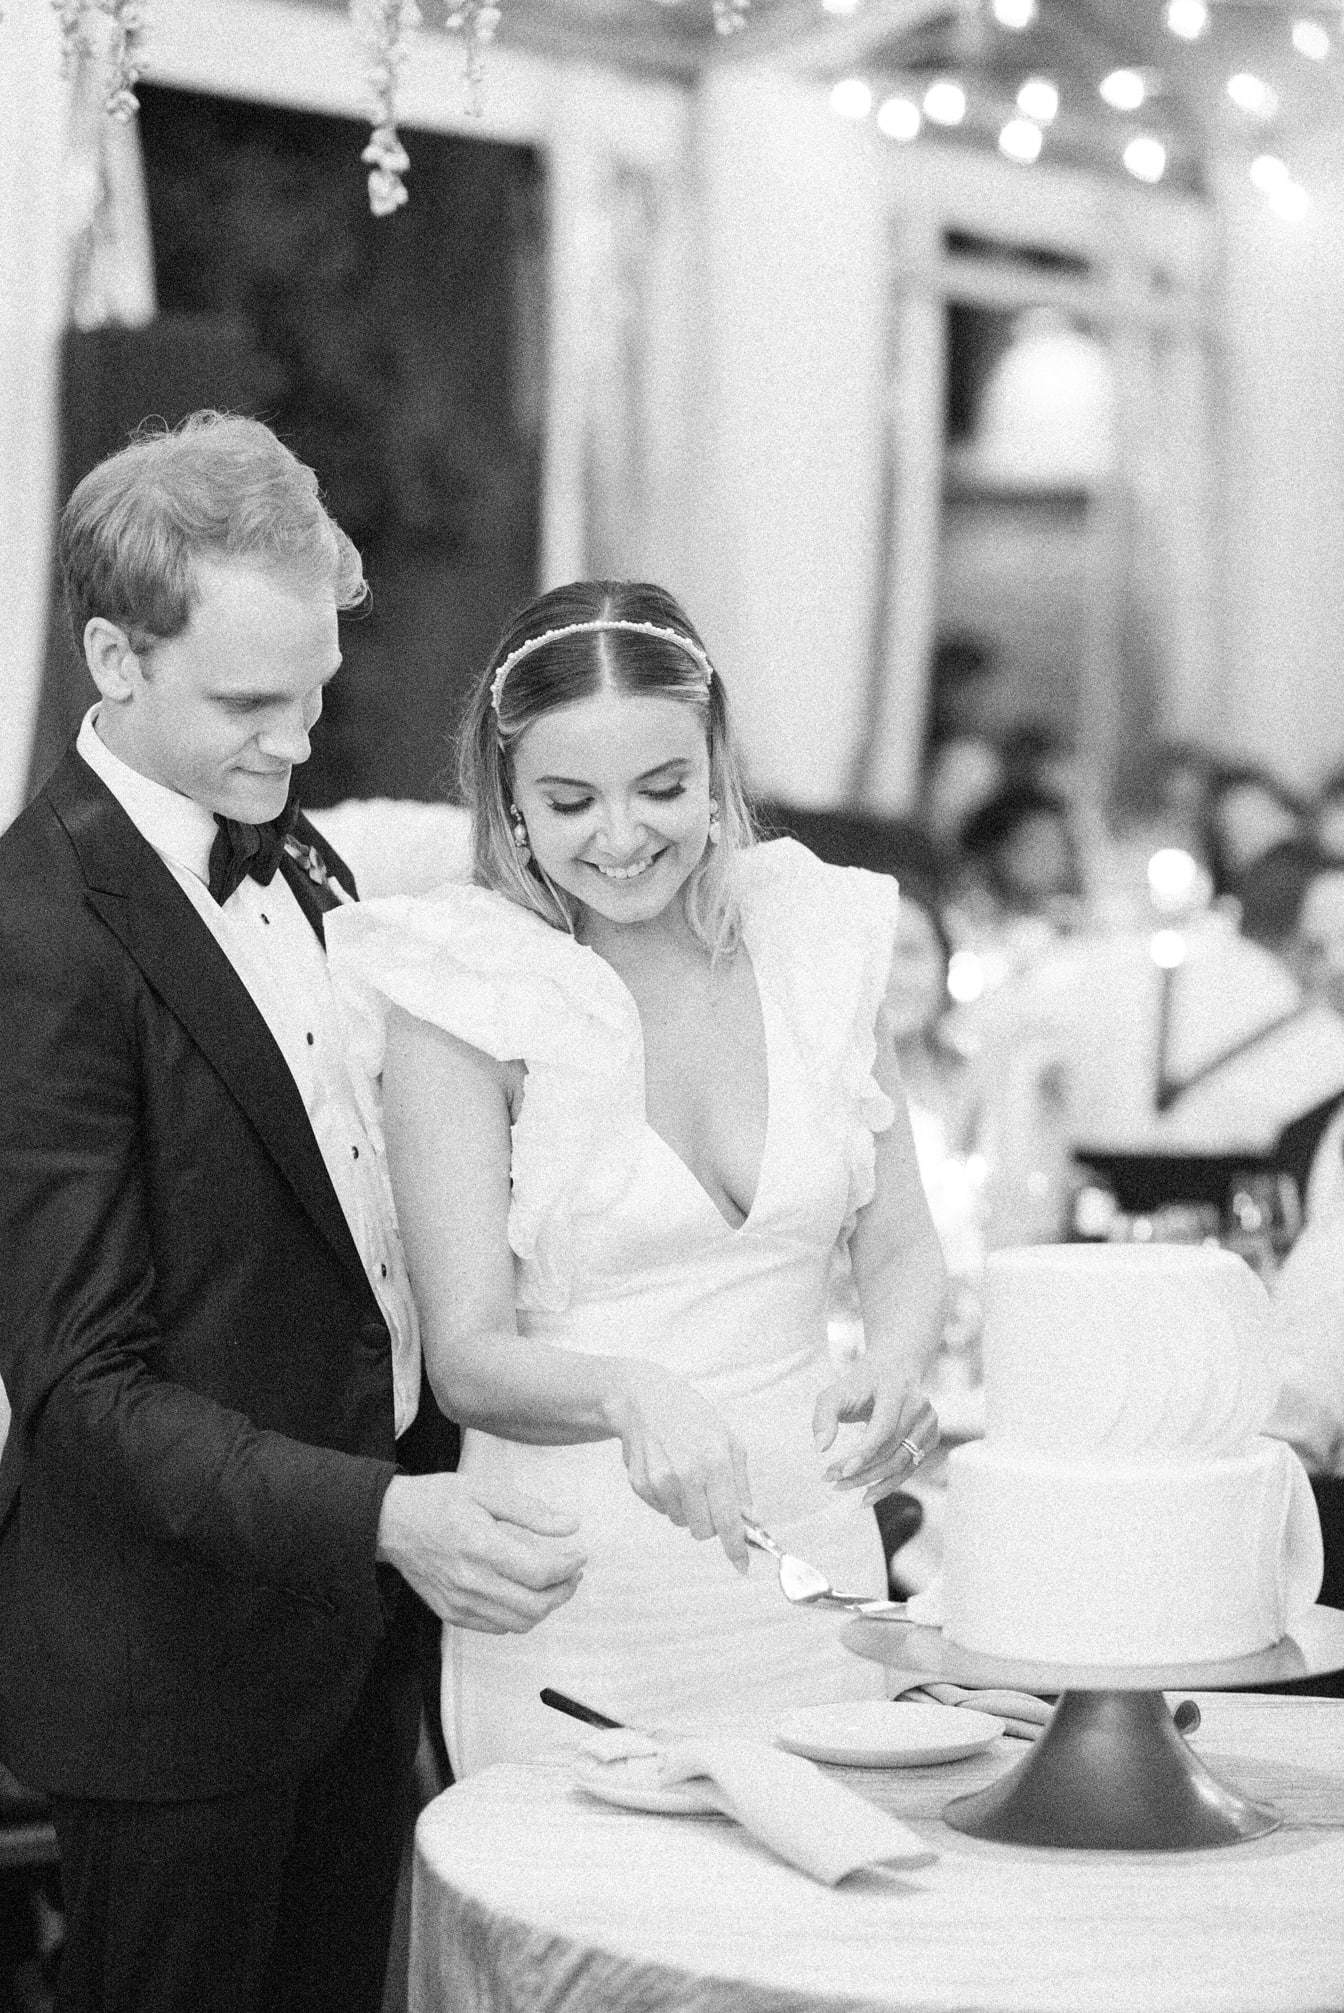 Bride and groom cutting wedding cake during their reception